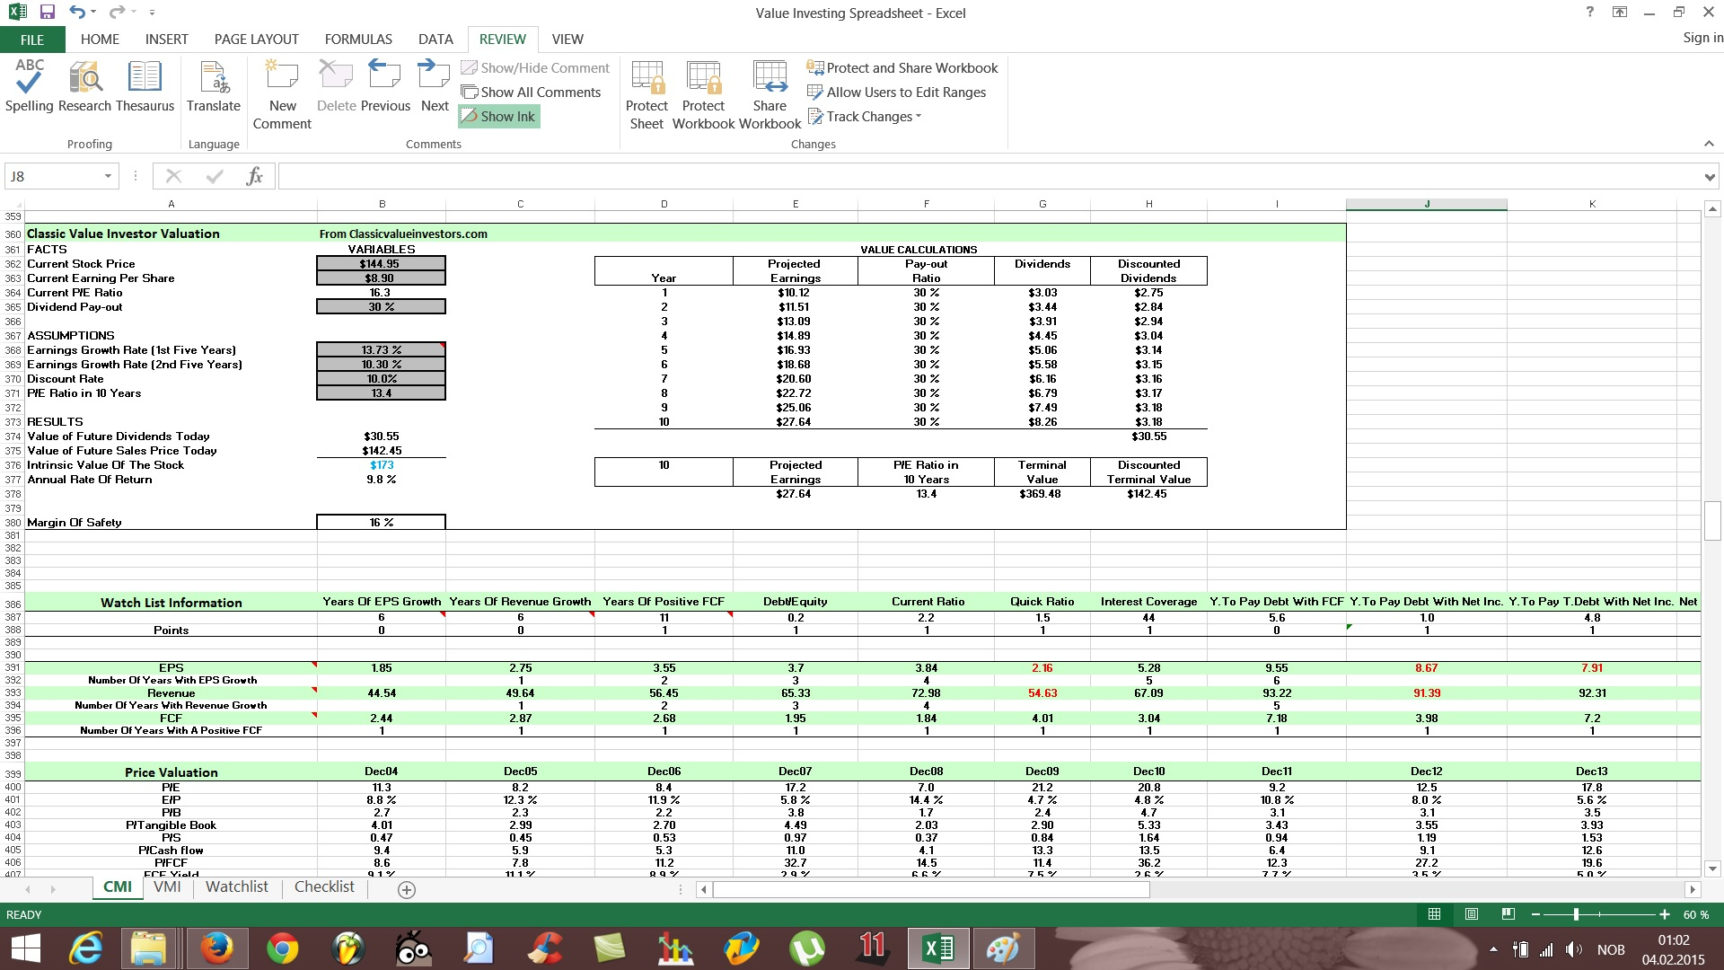 Stock Investment Spreadsheet Throughout Free Value Investing Stock Spreadsheet